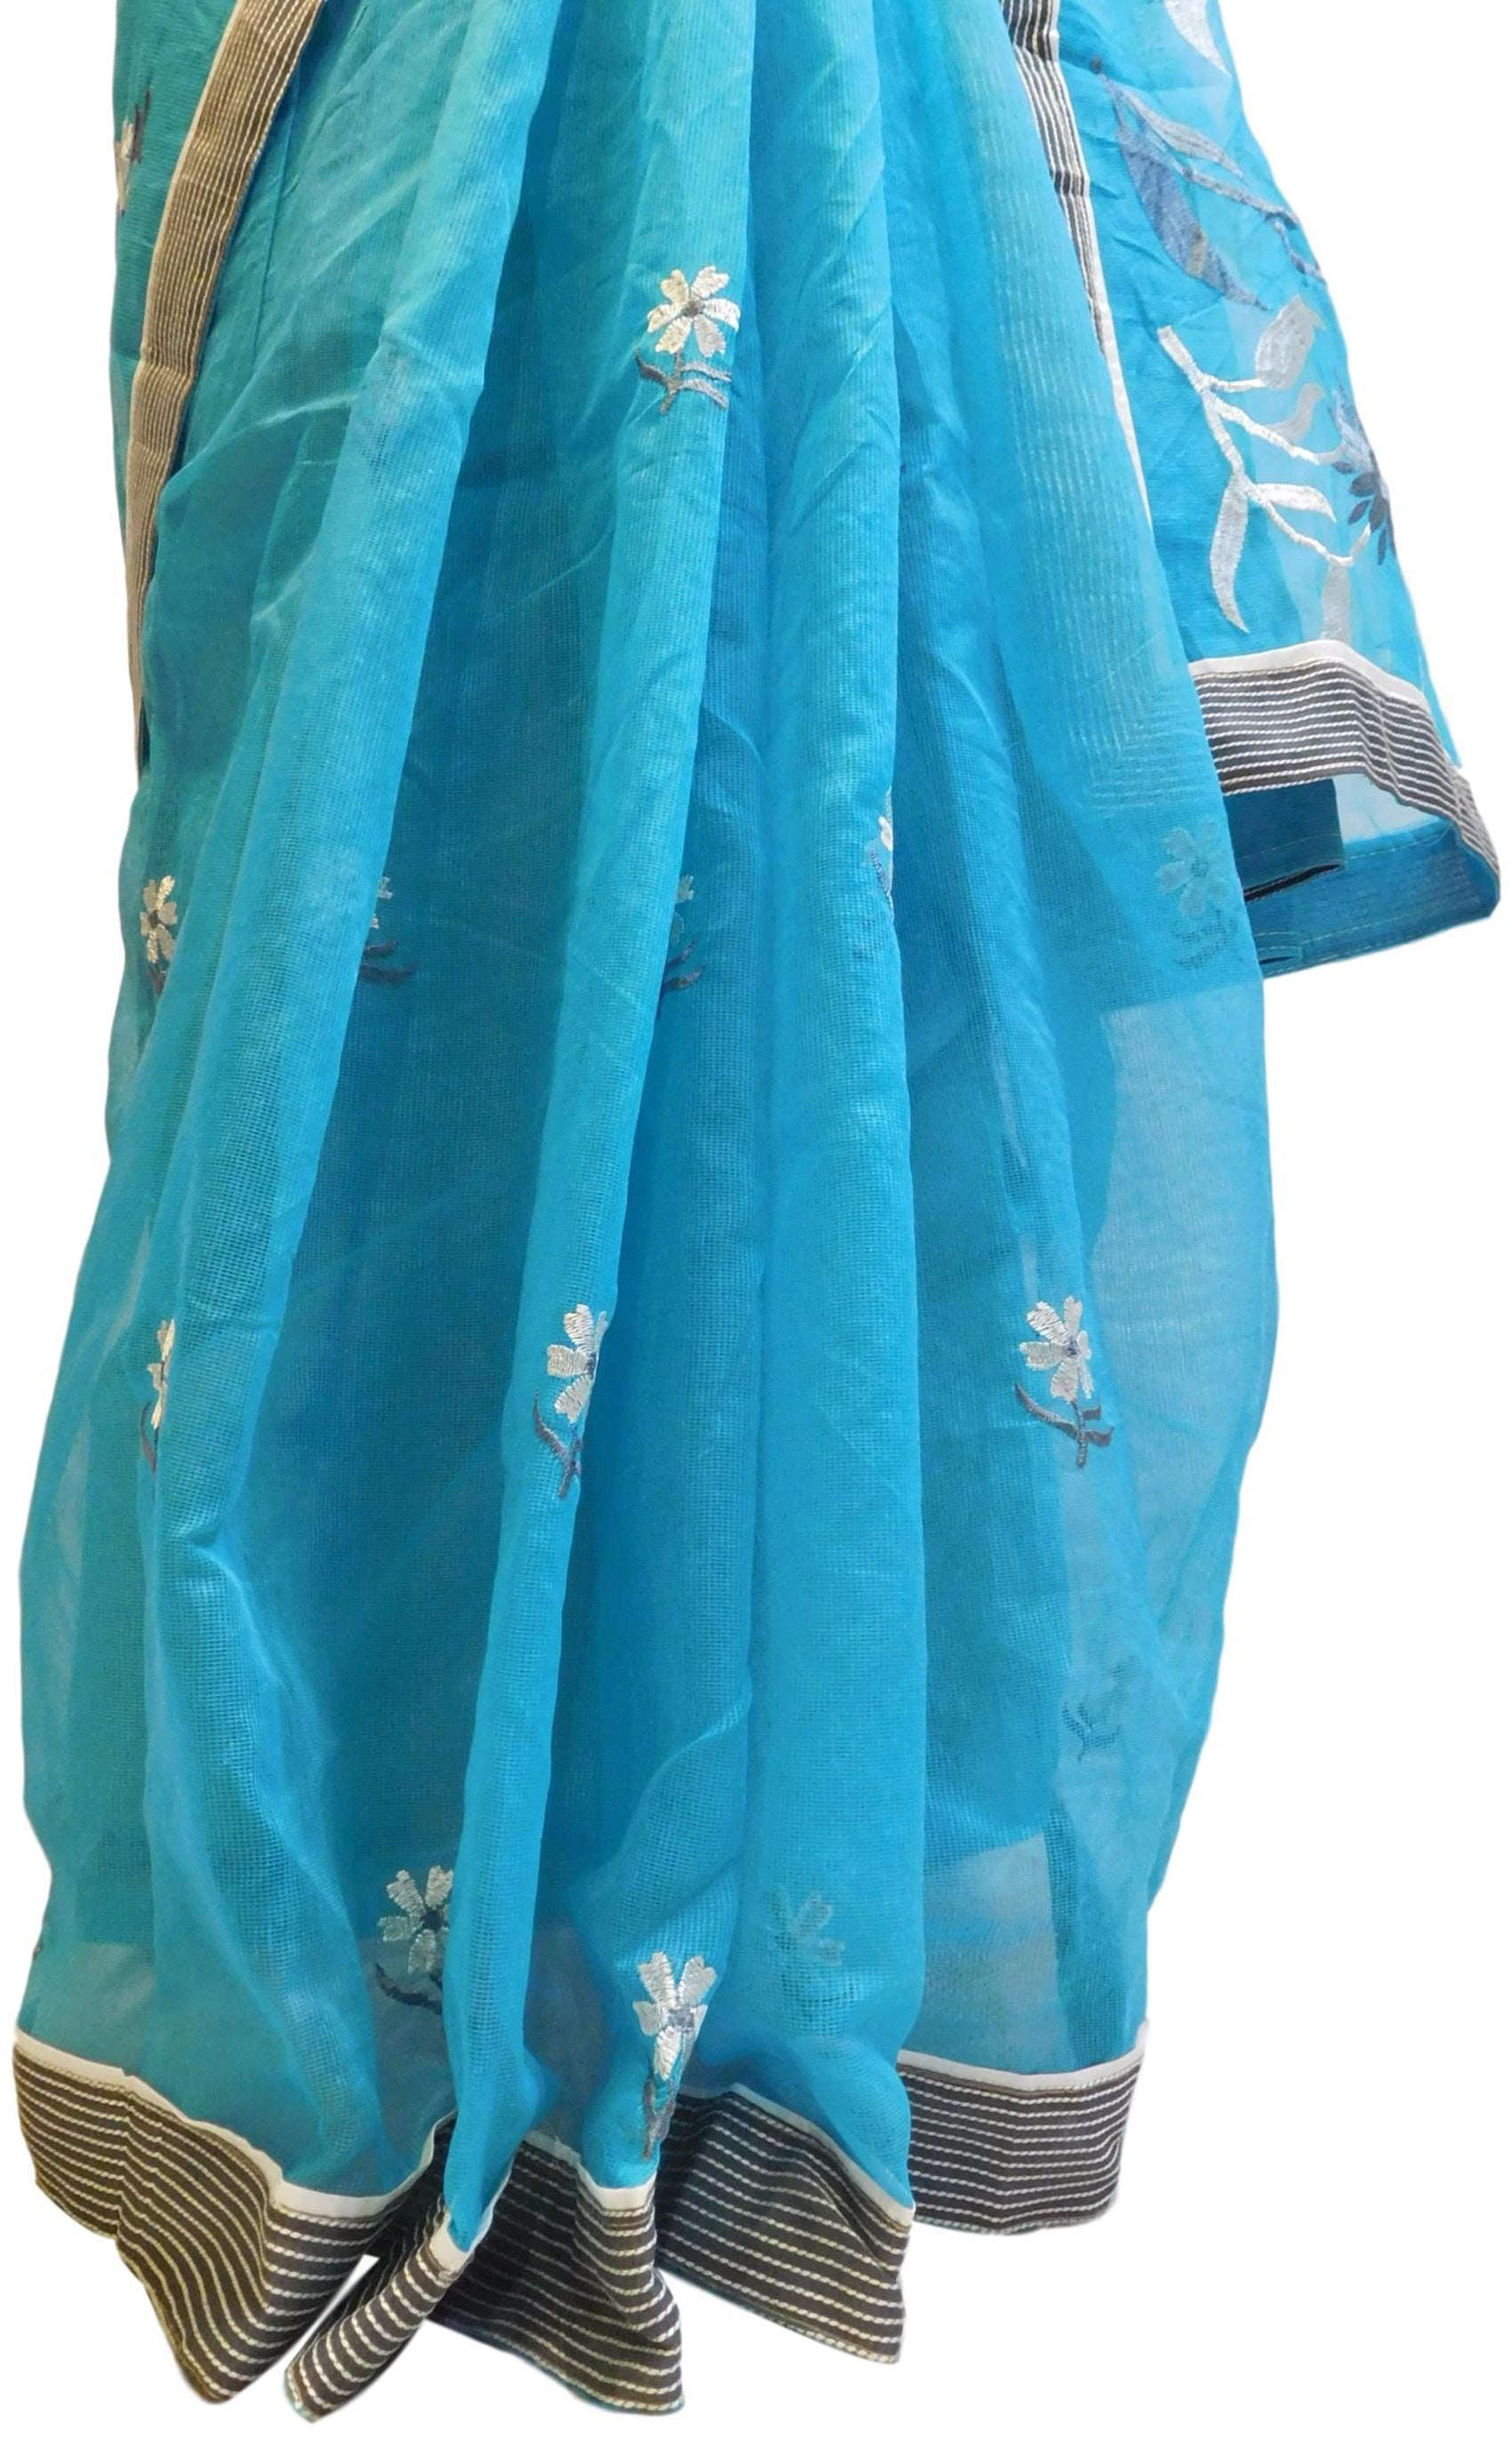 Blue Designer PartyWear Pure Supernet (Cotton) Thread Work Saree Sari With Grey Border